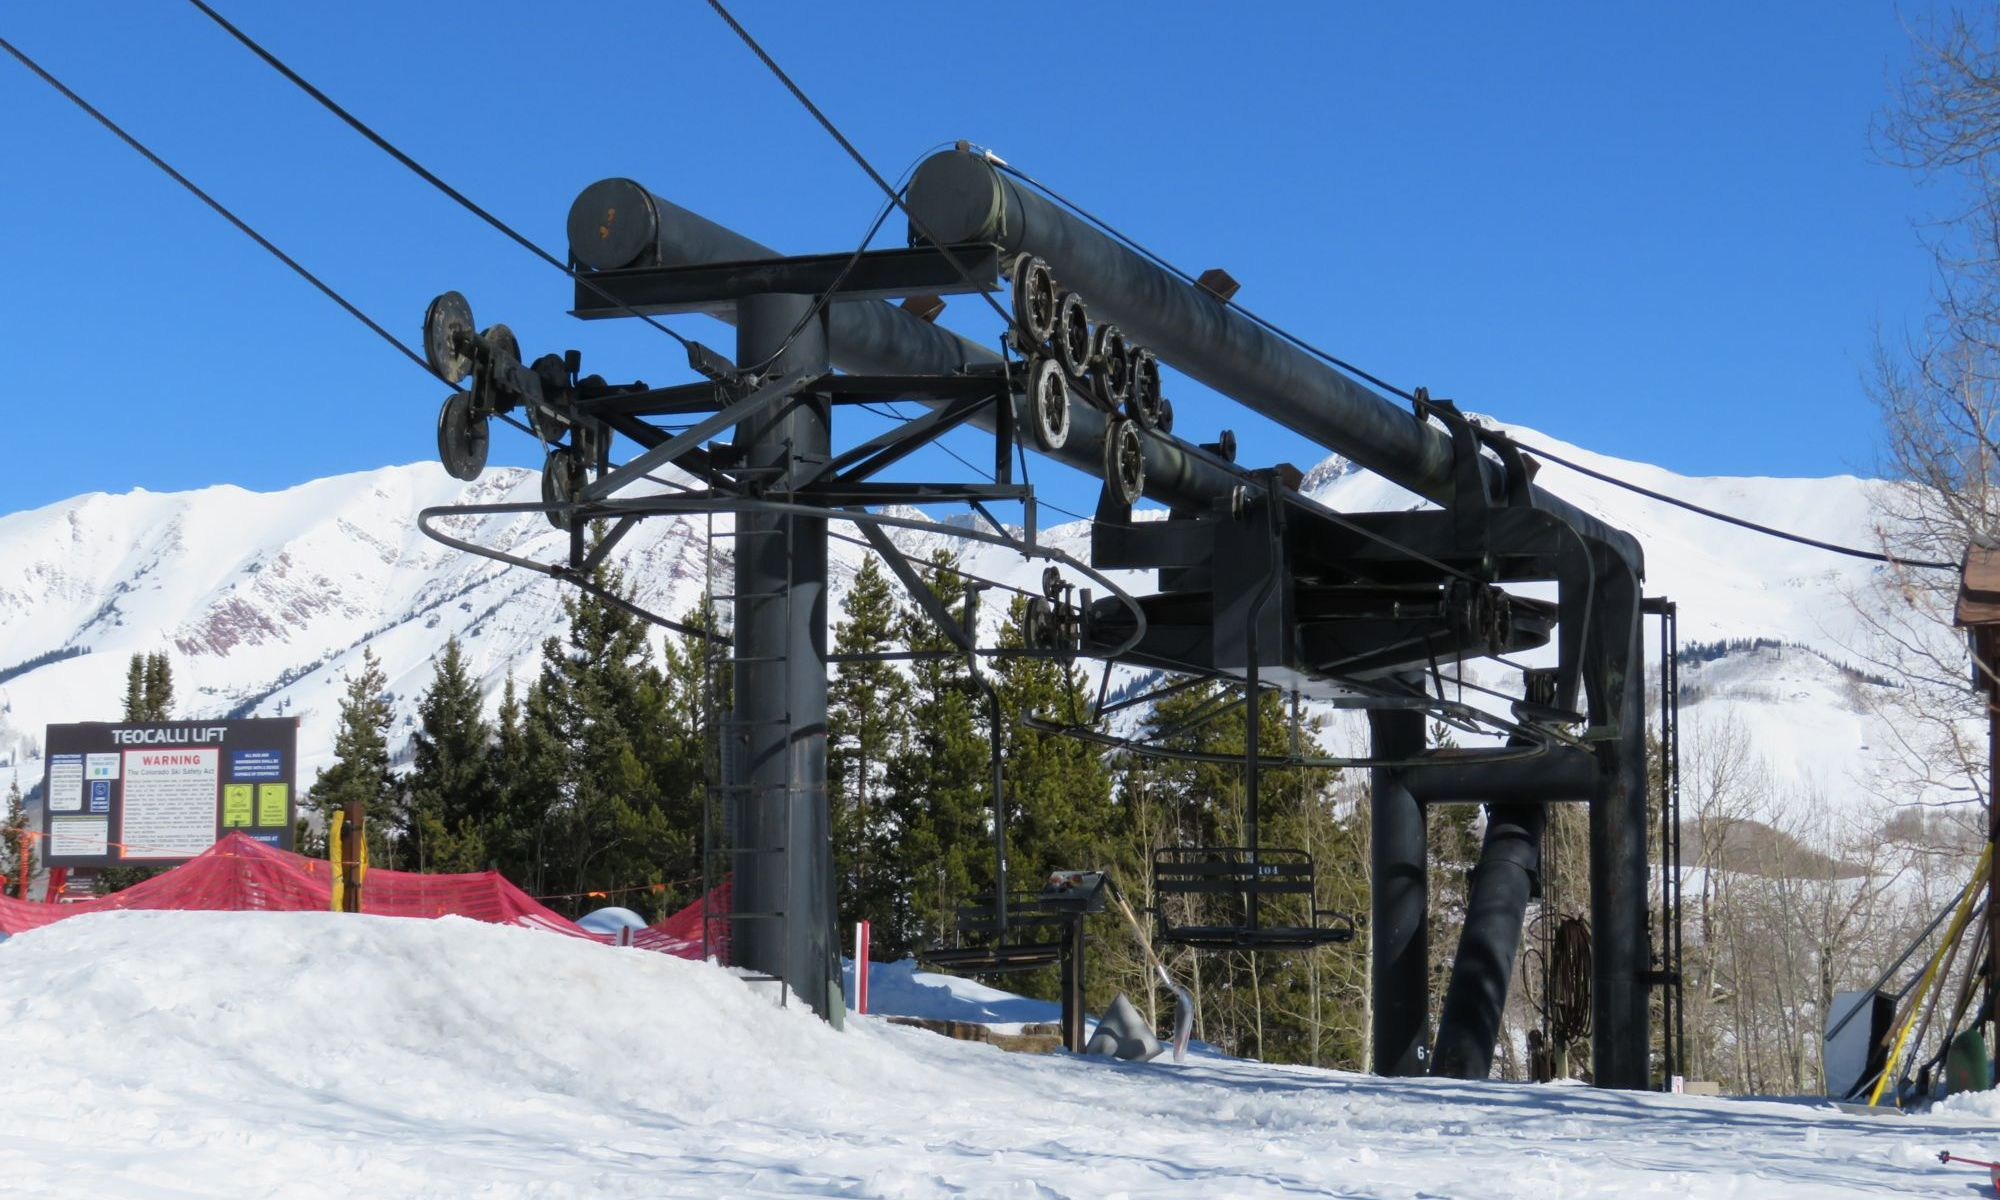 Teocalli lift - Photo: Peter Landsmen- KBUT radio. Crested Butte's Teocalli Lift Replacement Approved by U.S. Forest Service.